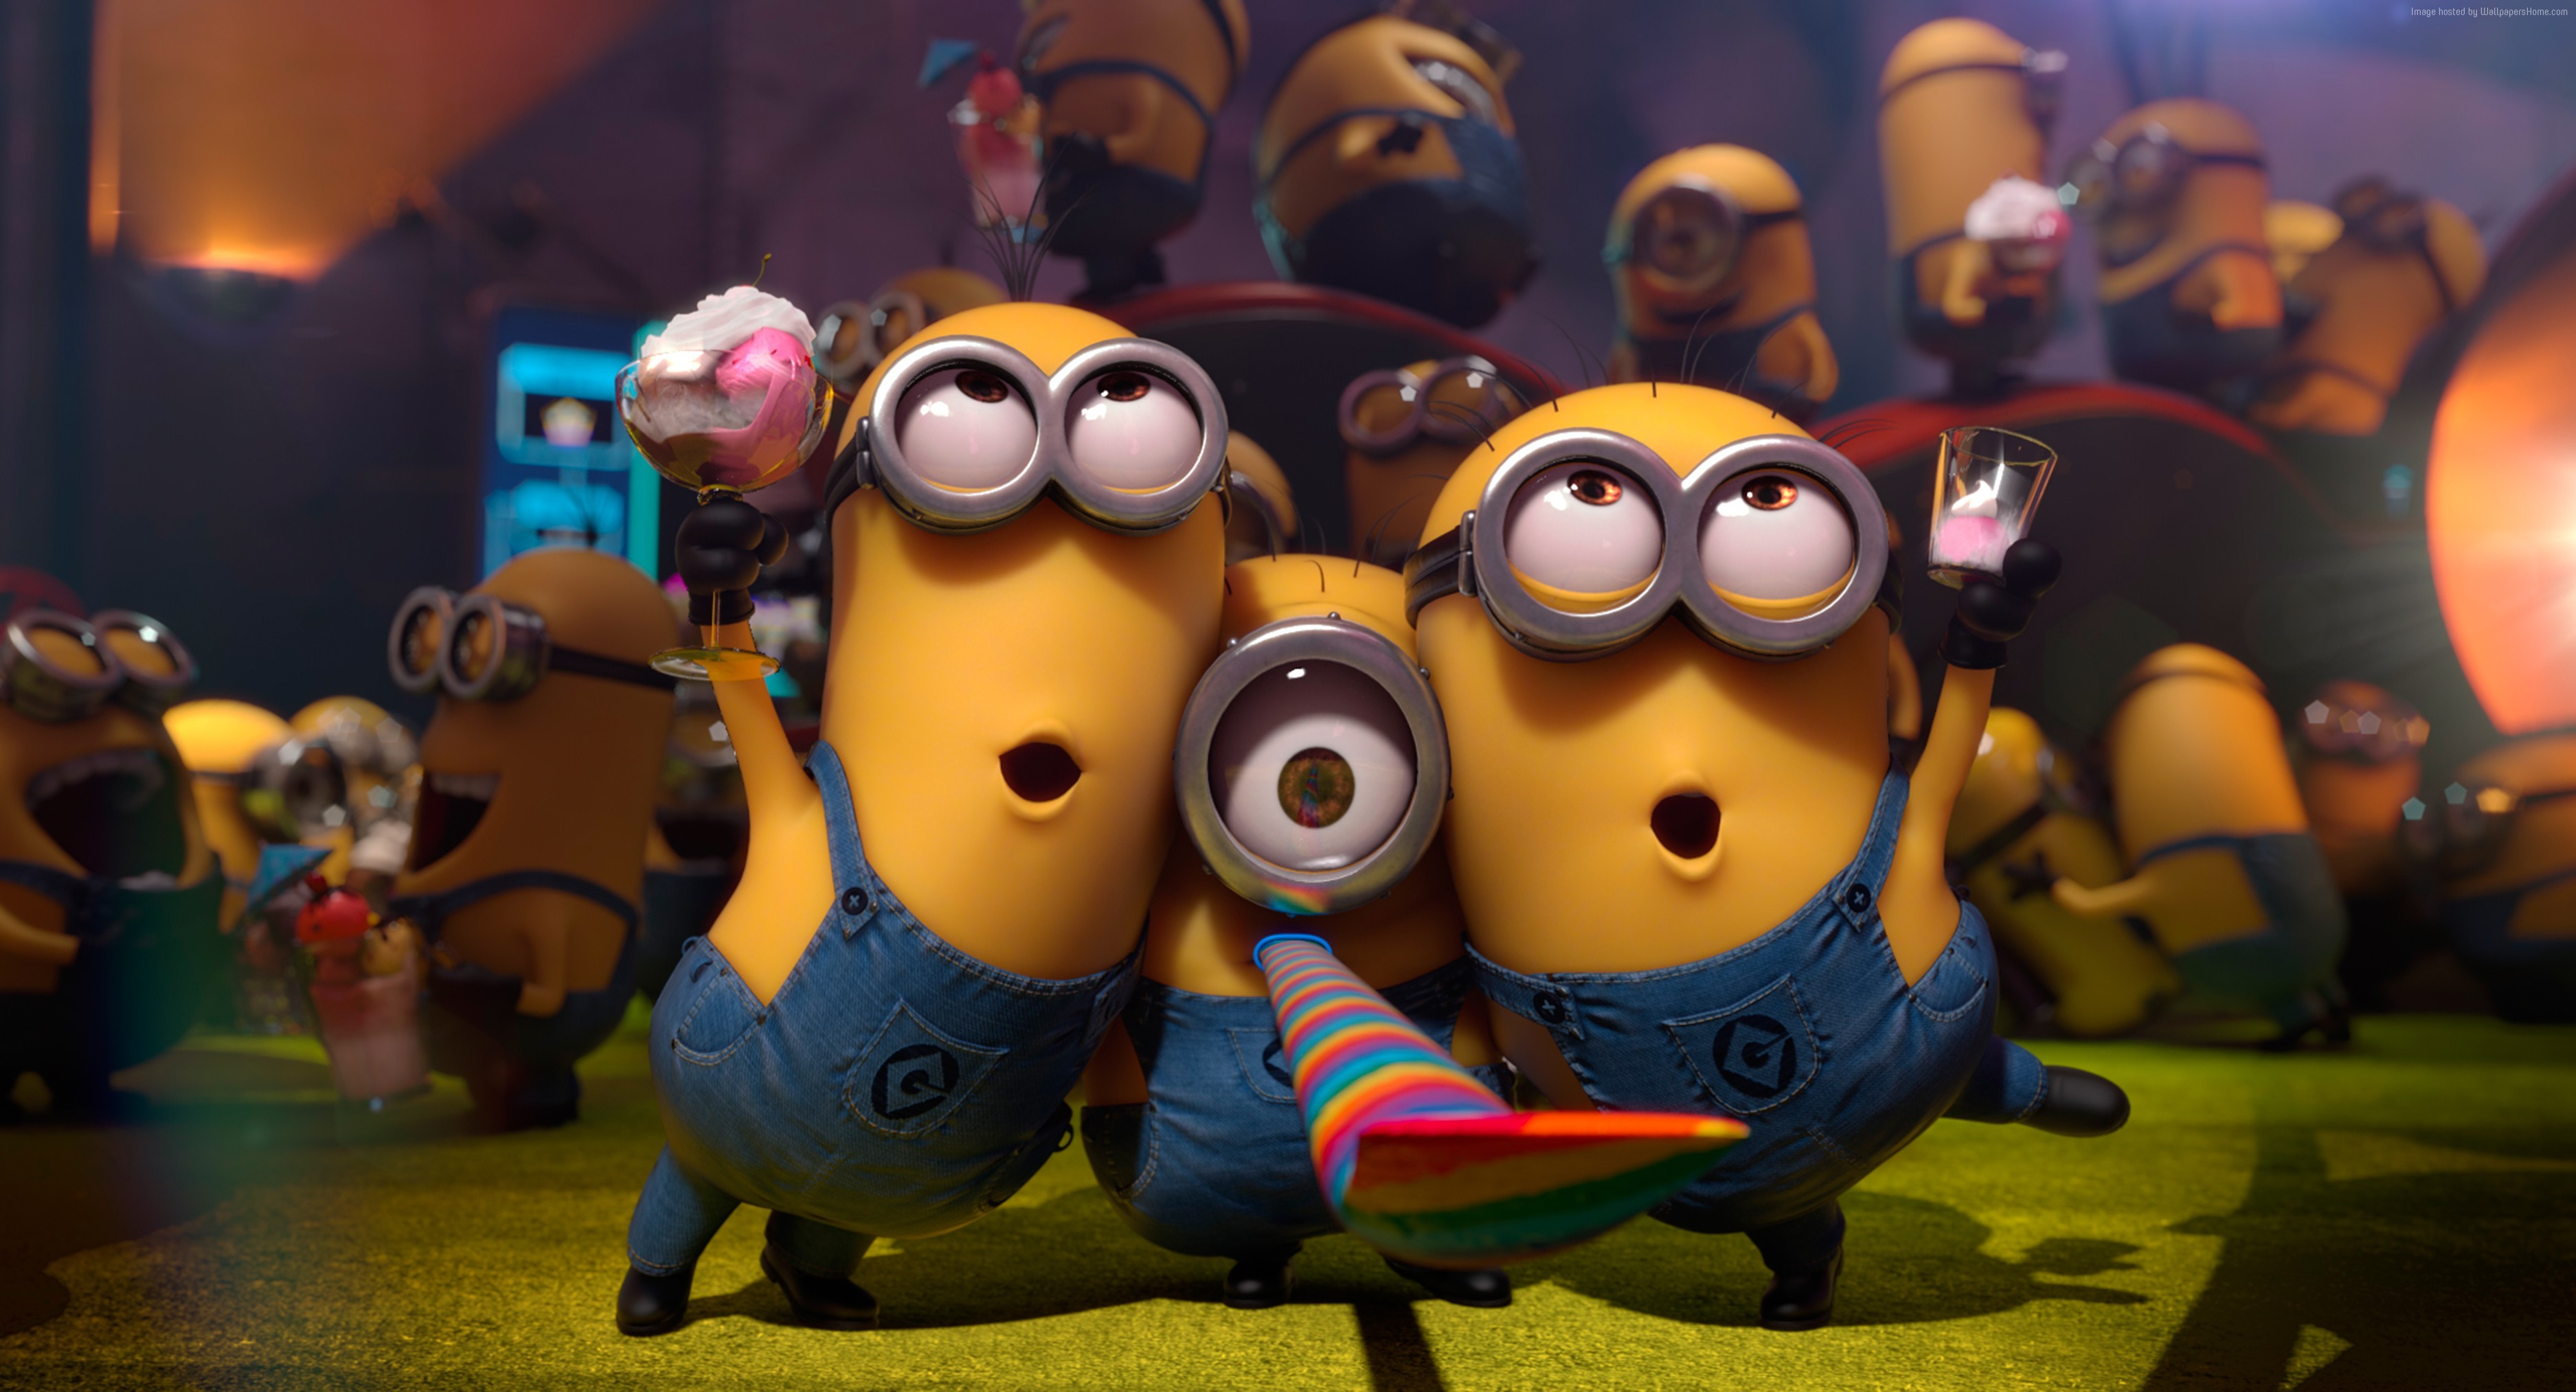 Related Wallpapers. Minions, cartoon, Best Animation Movies of 2015,  yellow, funny (horizontal) …